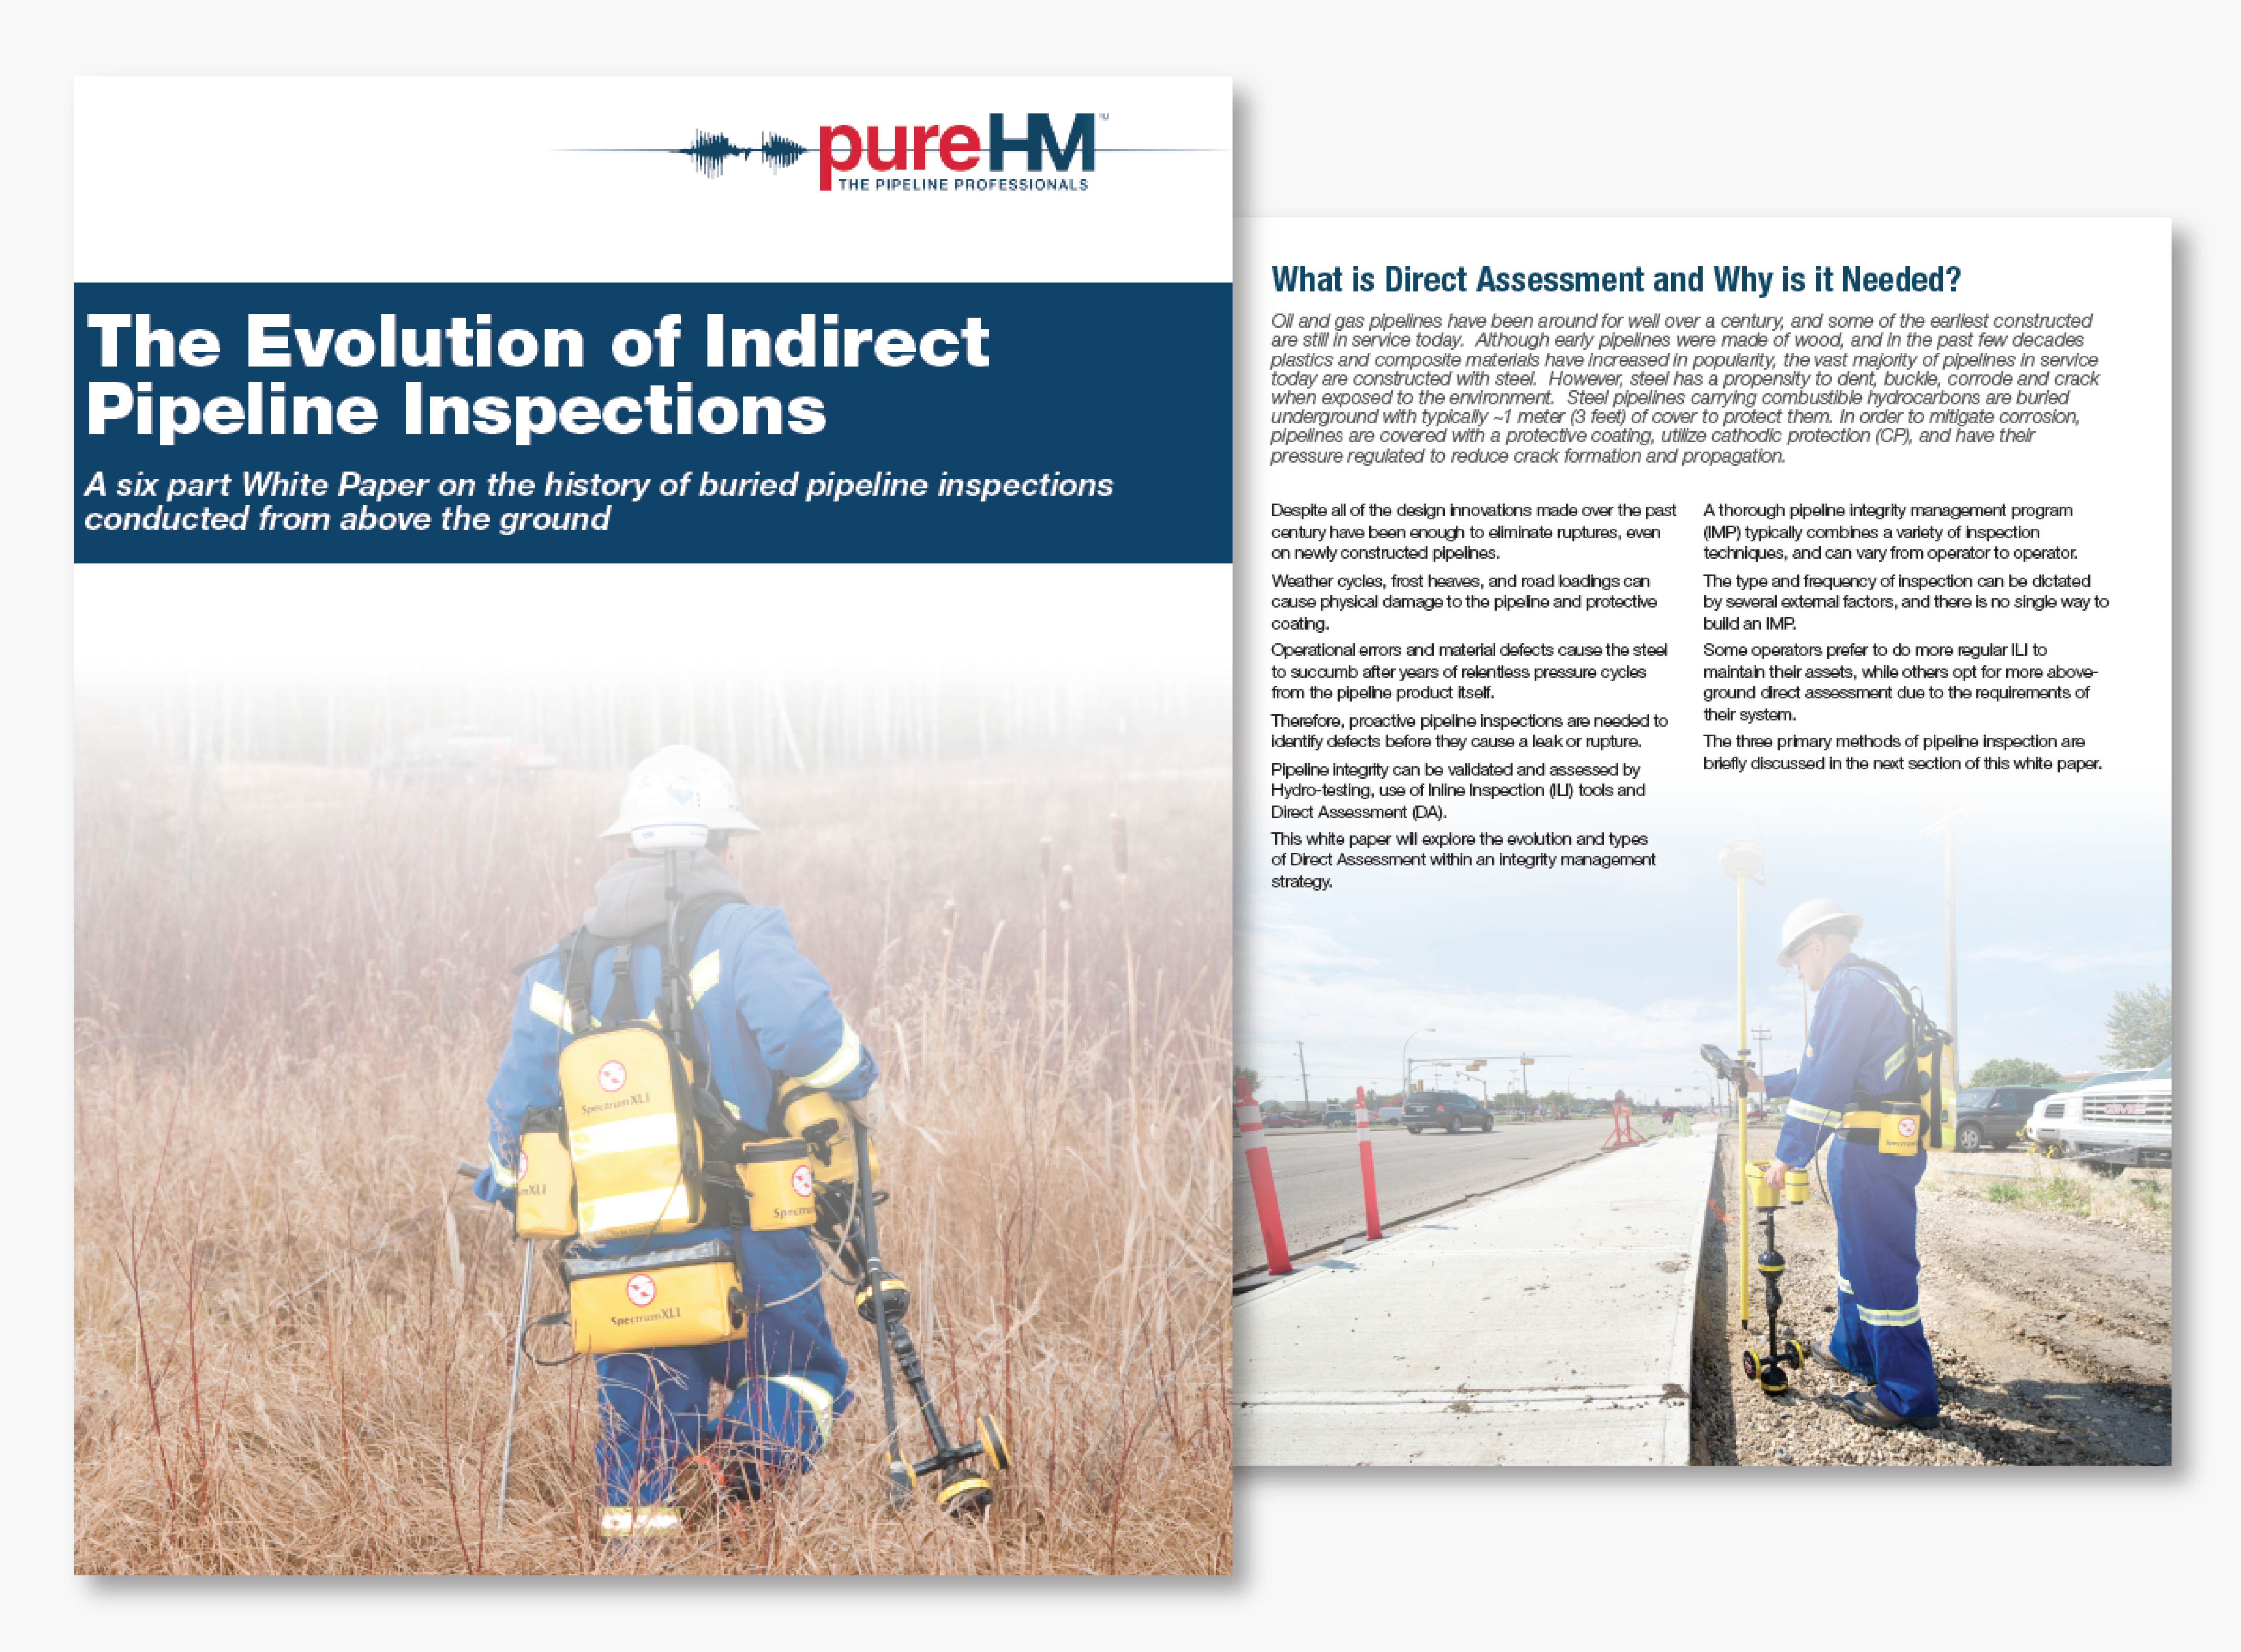 The Evolution of Indirect Pipeline Inspections